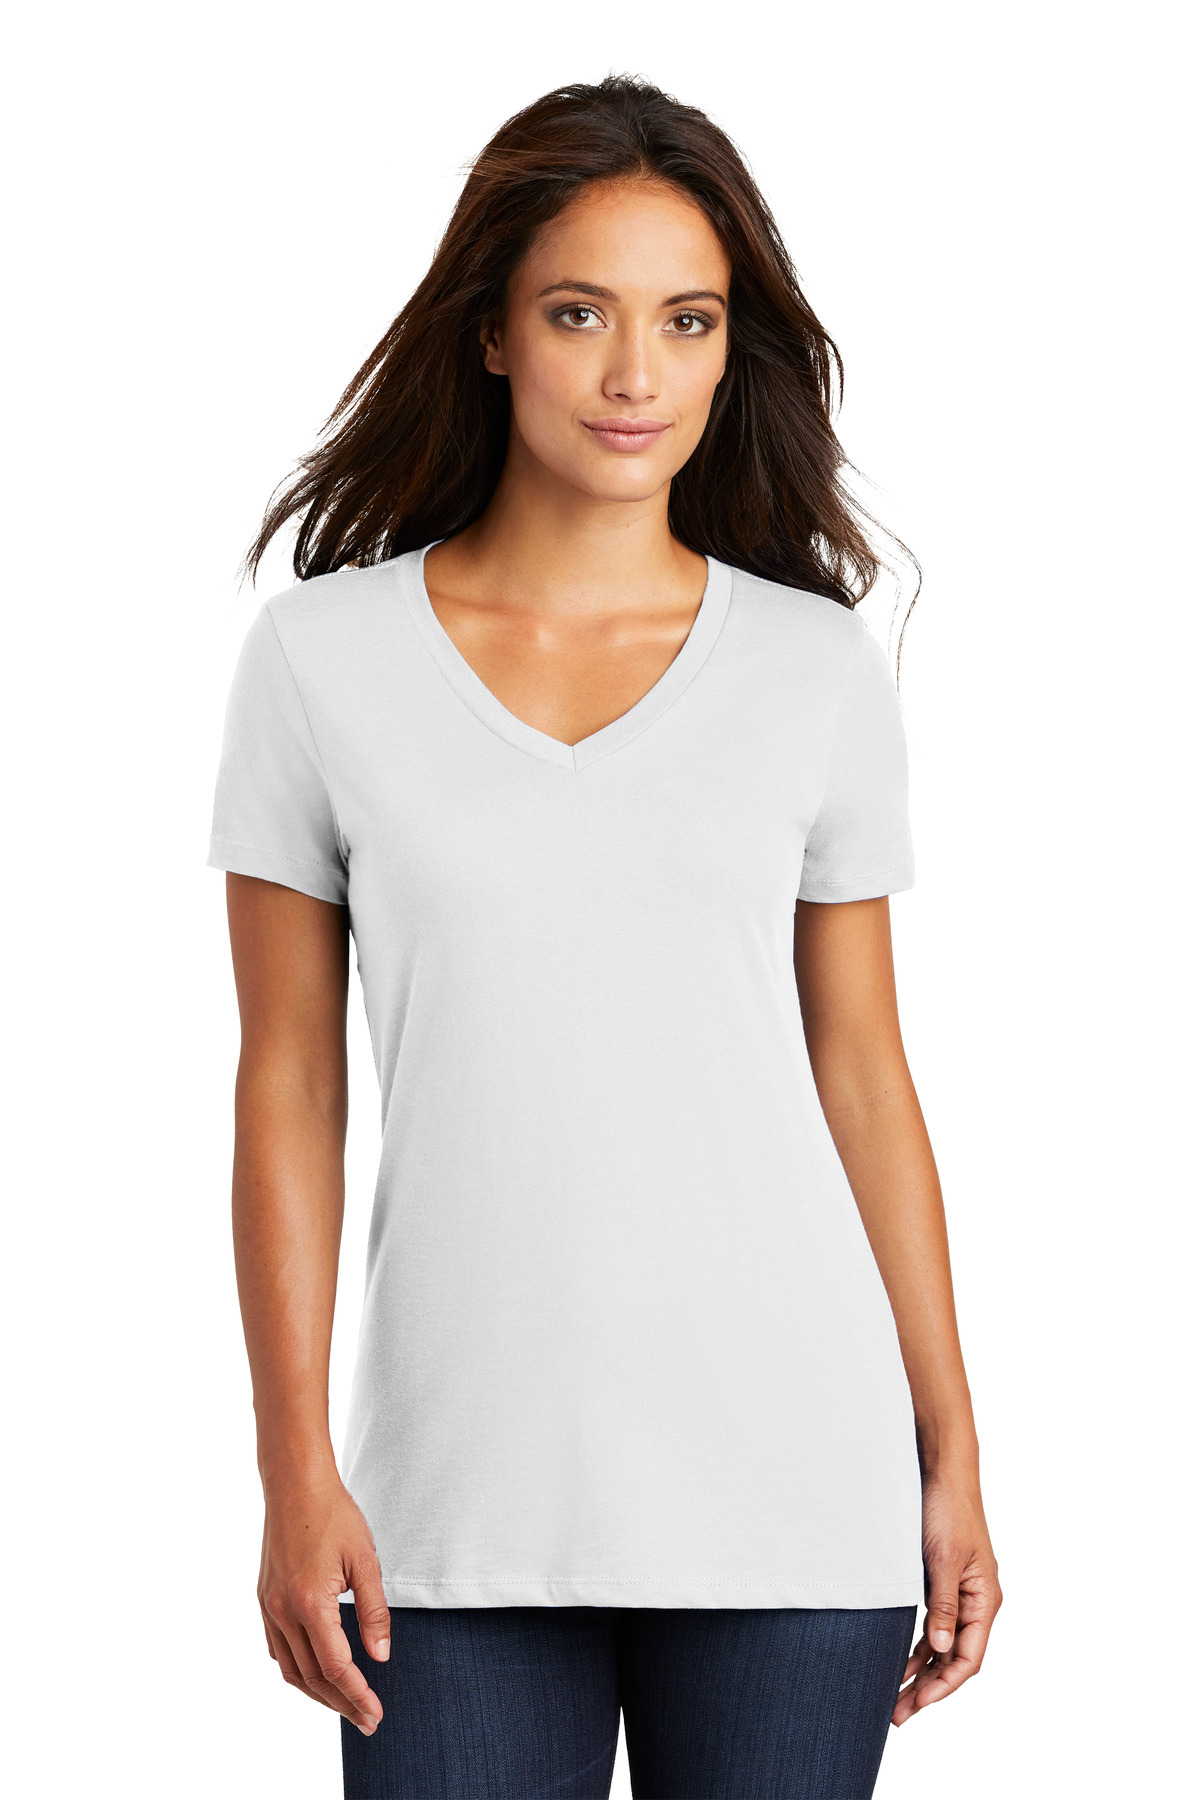 District ®  - Women's Perfect Weight ®  V-Neck Tee. DM1170L - Bright White